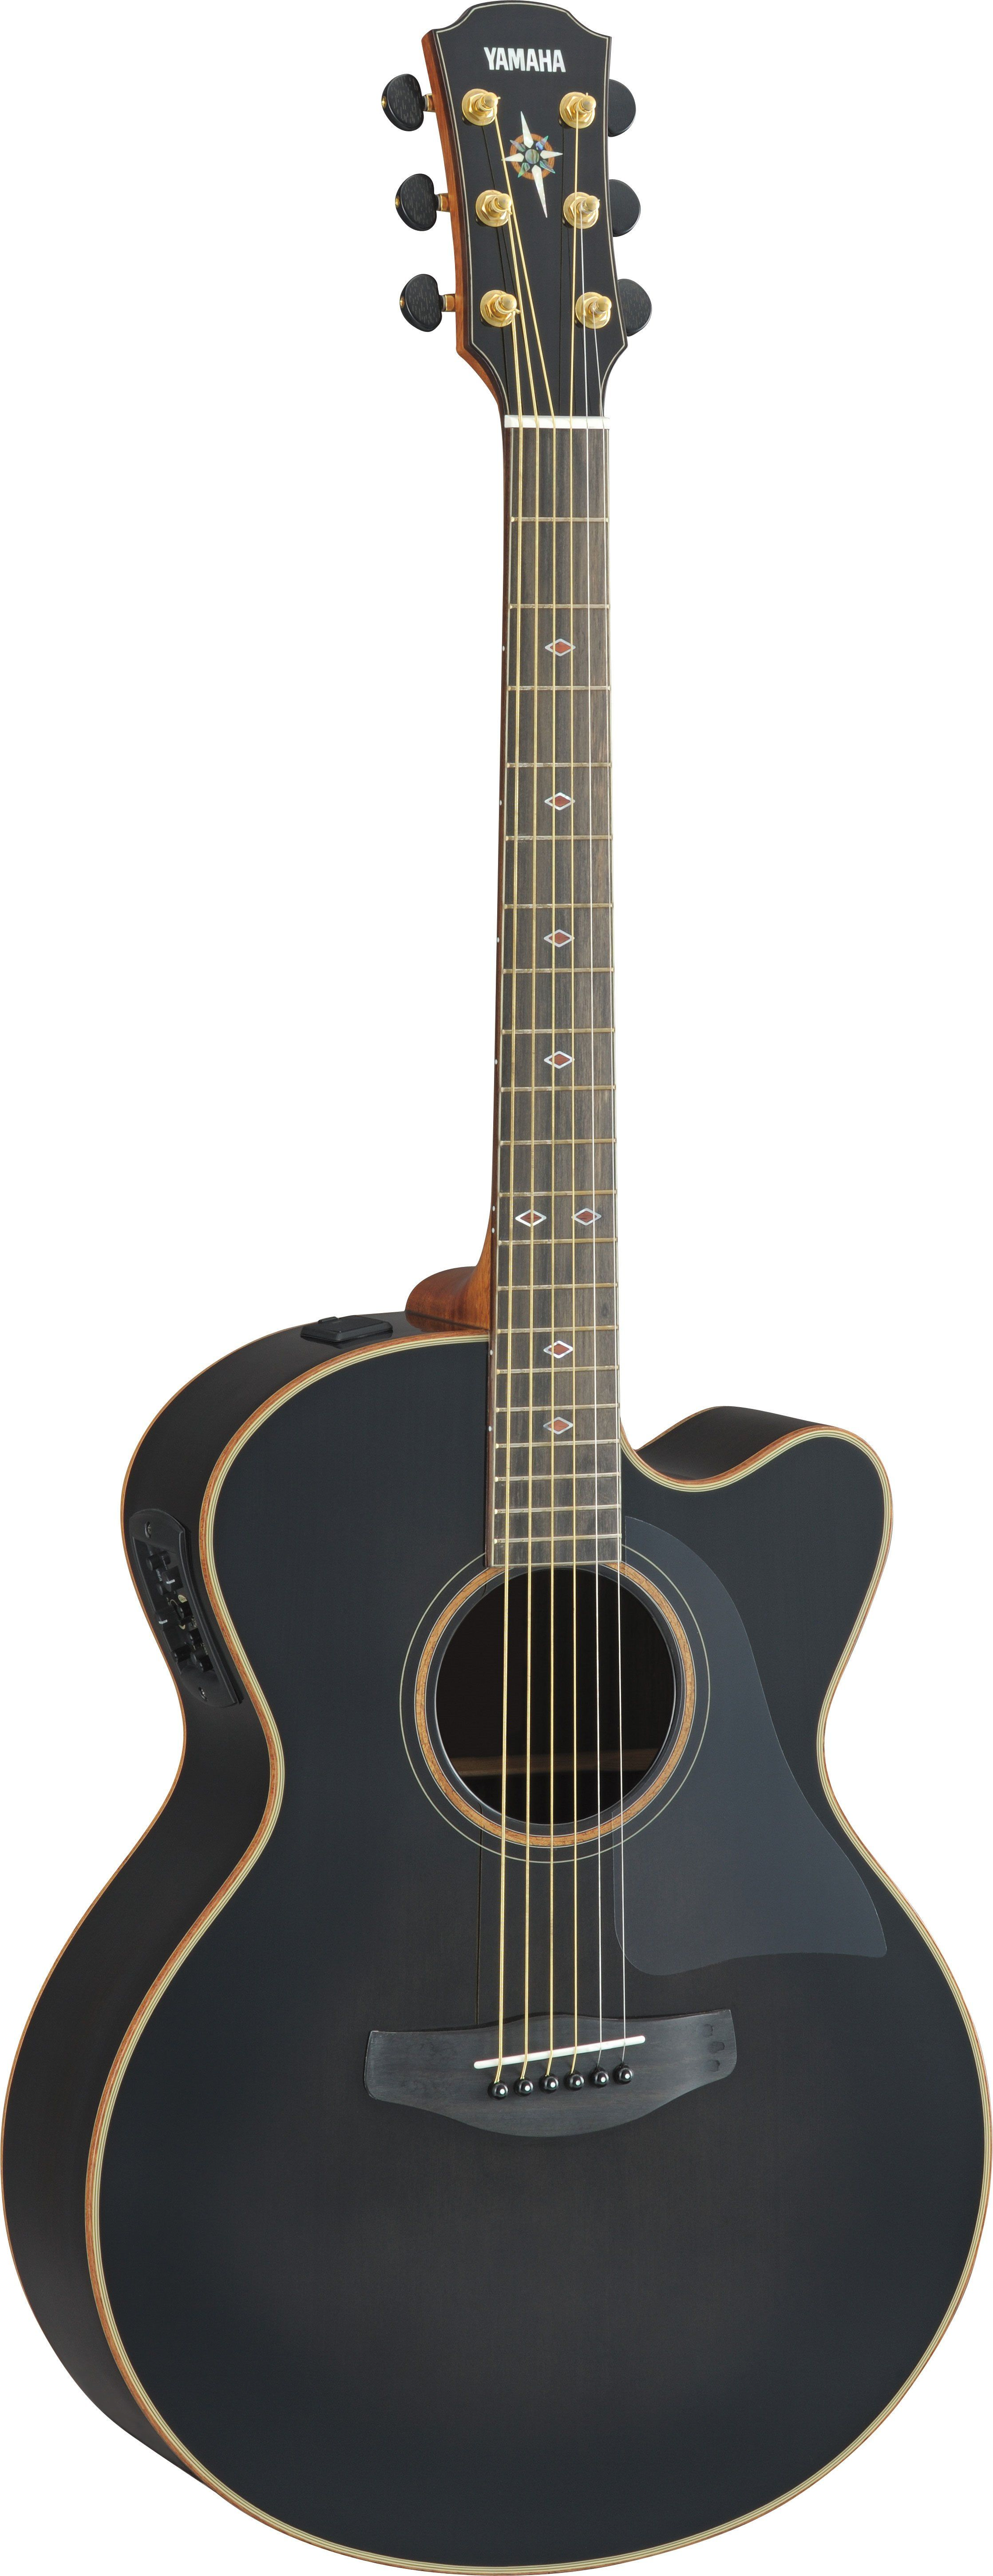 Acoustic Guitar Cpx Cpx1200ii Translucent Black Yamaha Guitar Yamaha Guitars Acoustic Acoustic Guitar